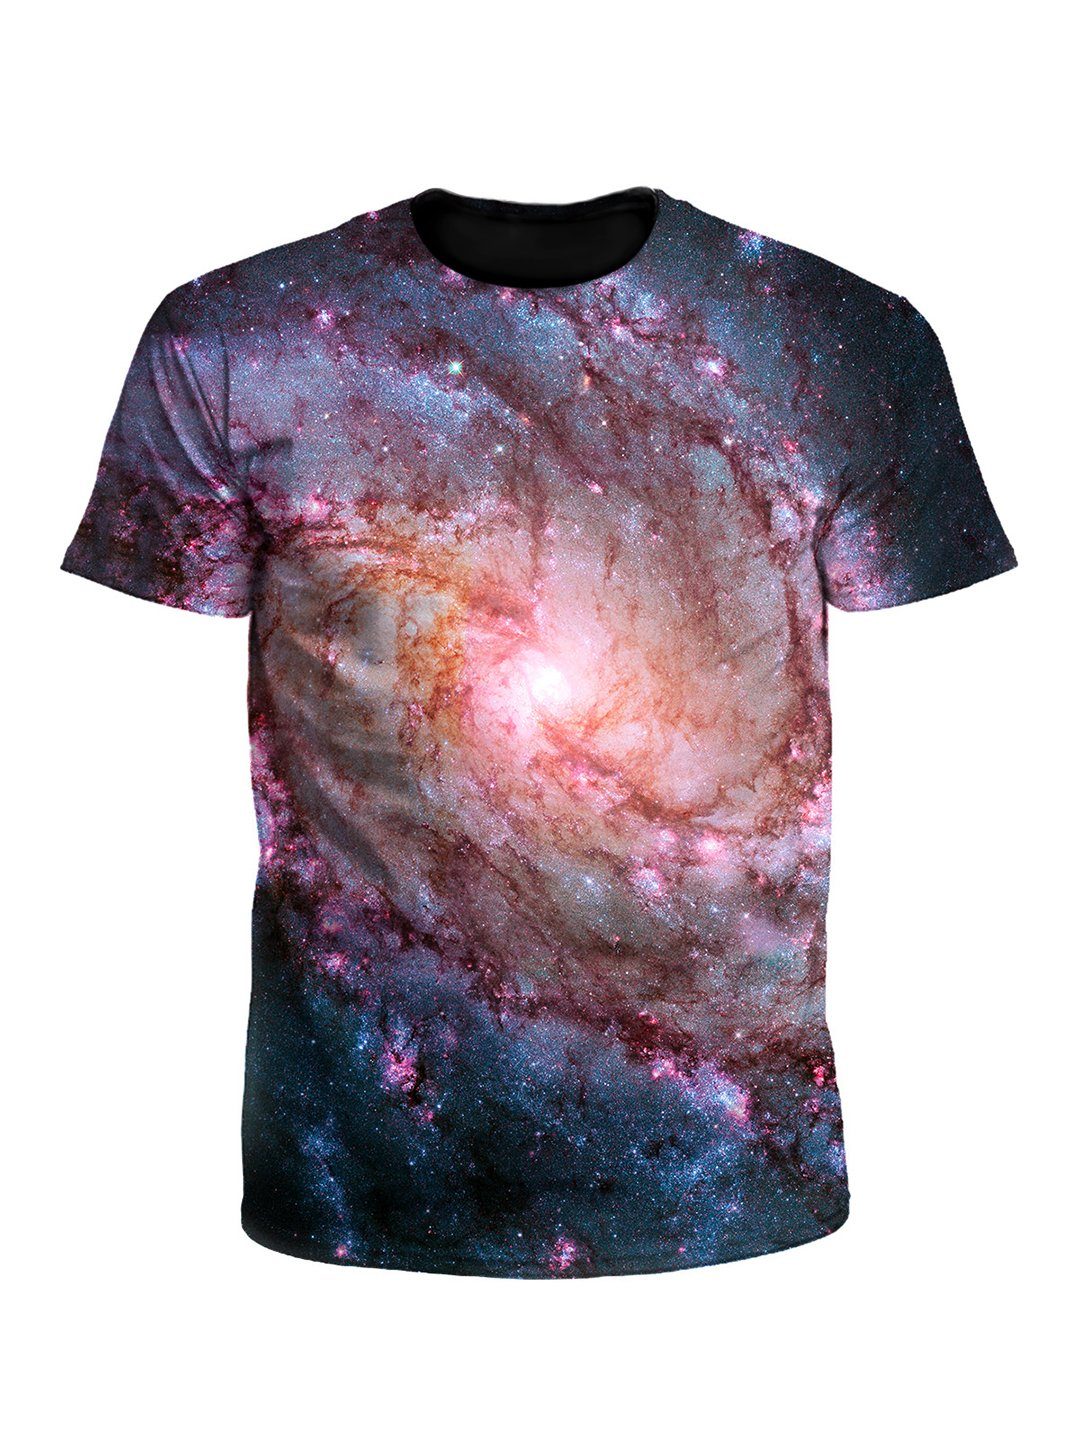 Twisted Skies Spiral Vortex Galaxy Unisex T-Shirt